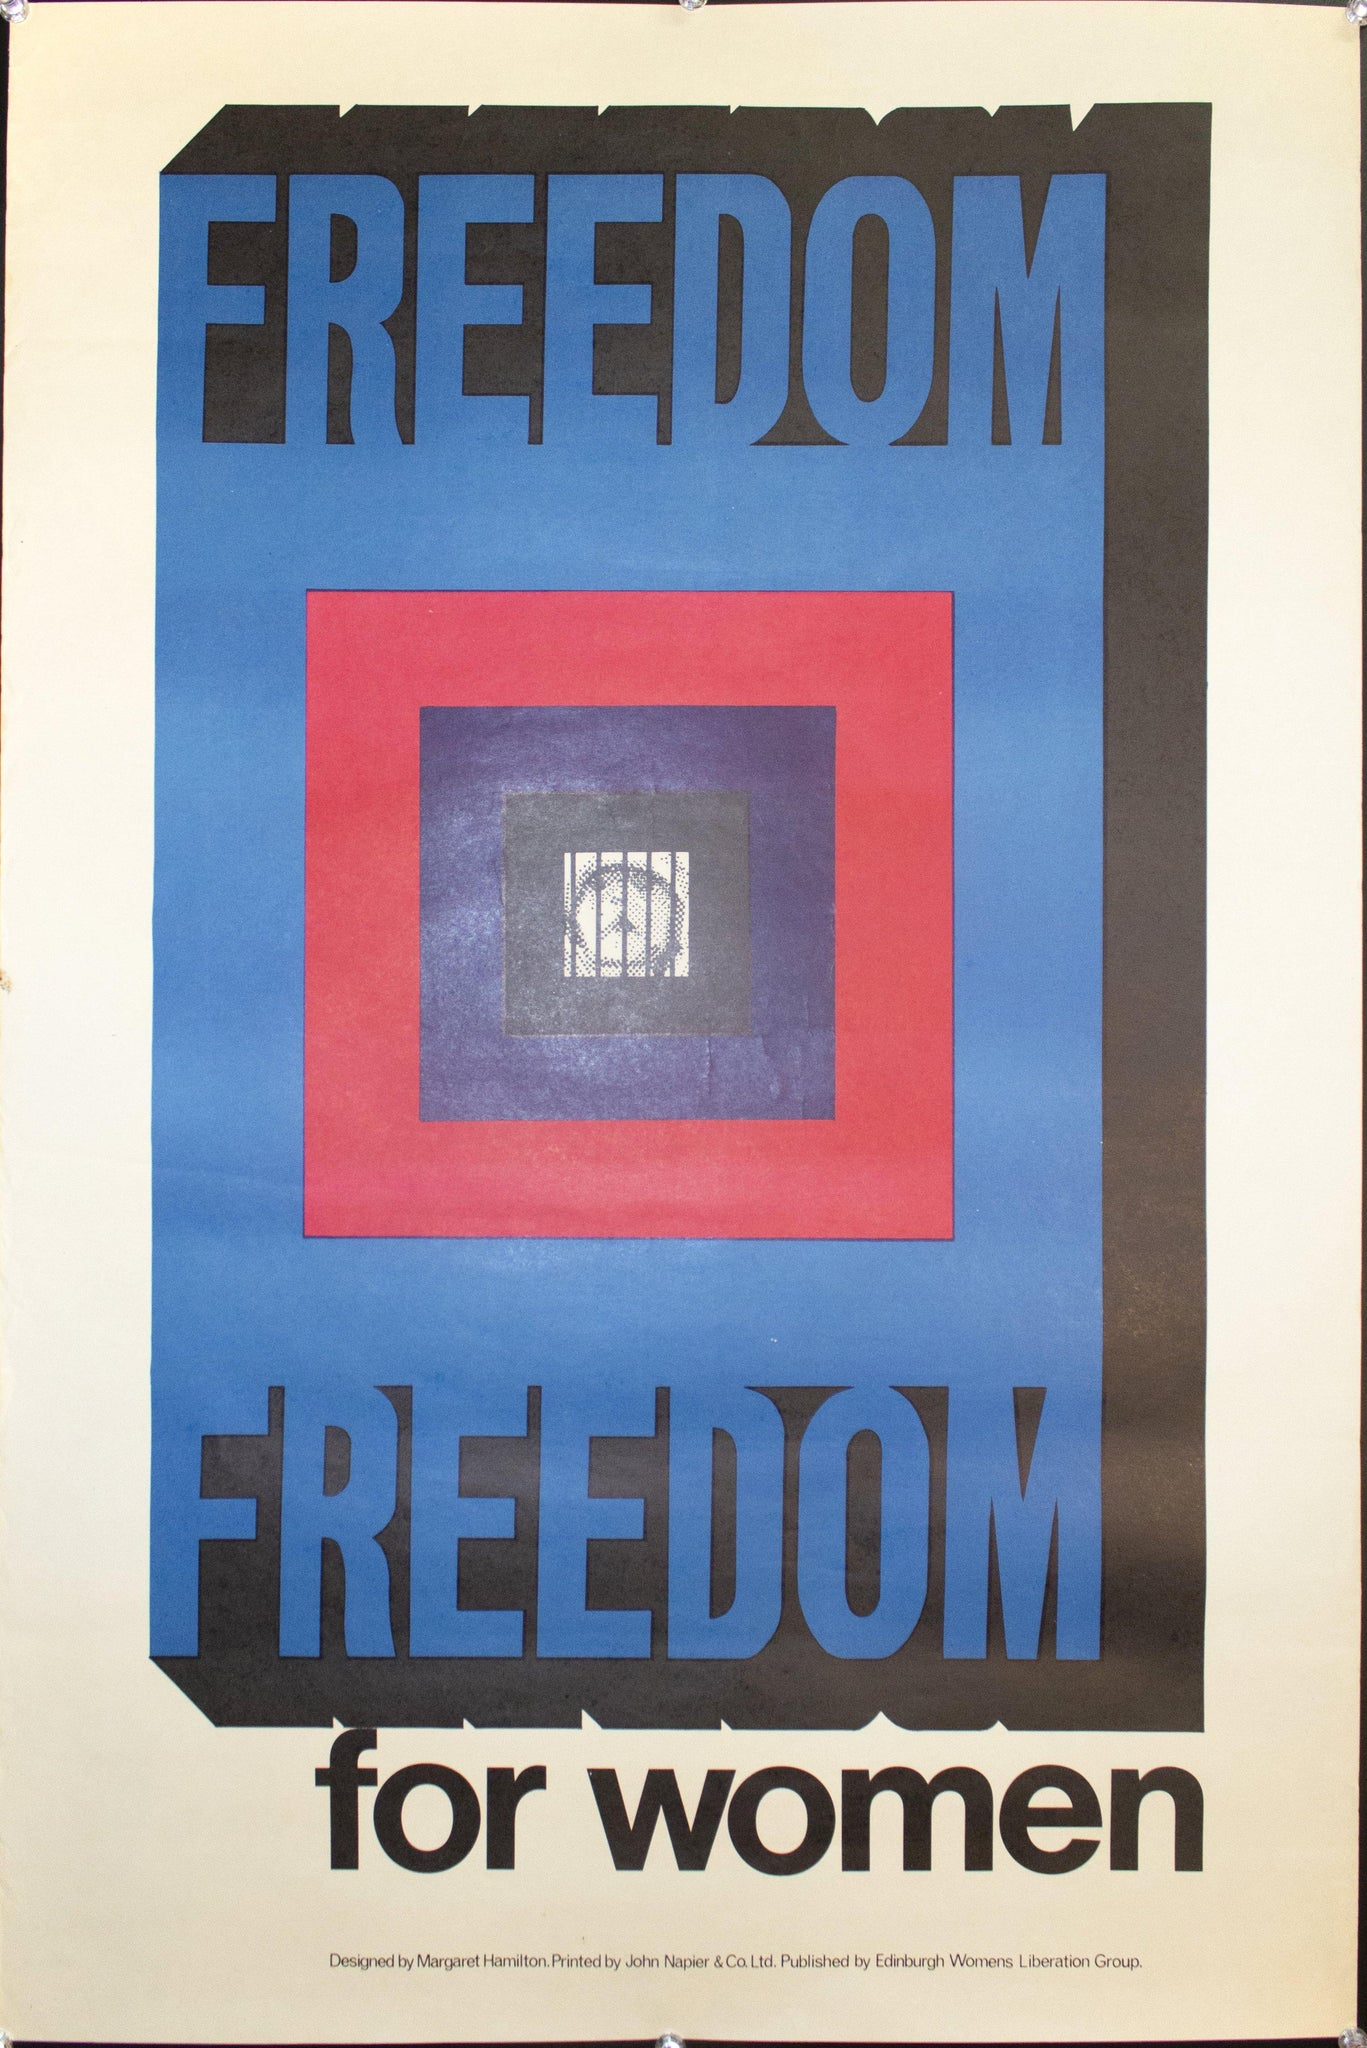 c. 1974 Freedom For Women by Margaret Hamilton